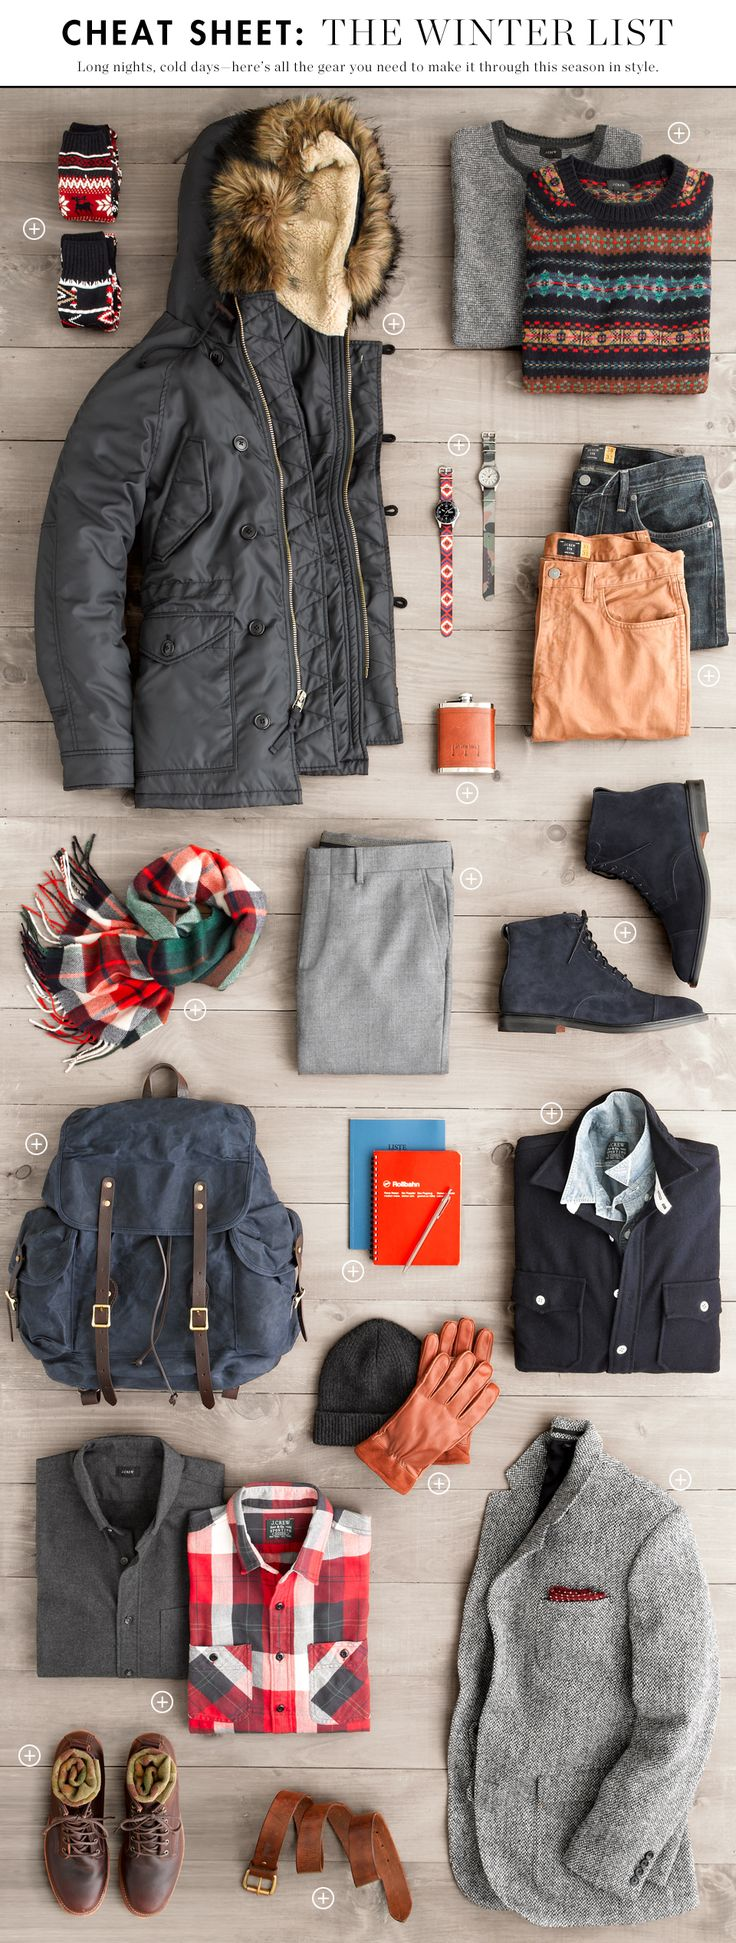 The Winter cheat sheet for menswear from @jcrew, take a look at these hearty pieces.